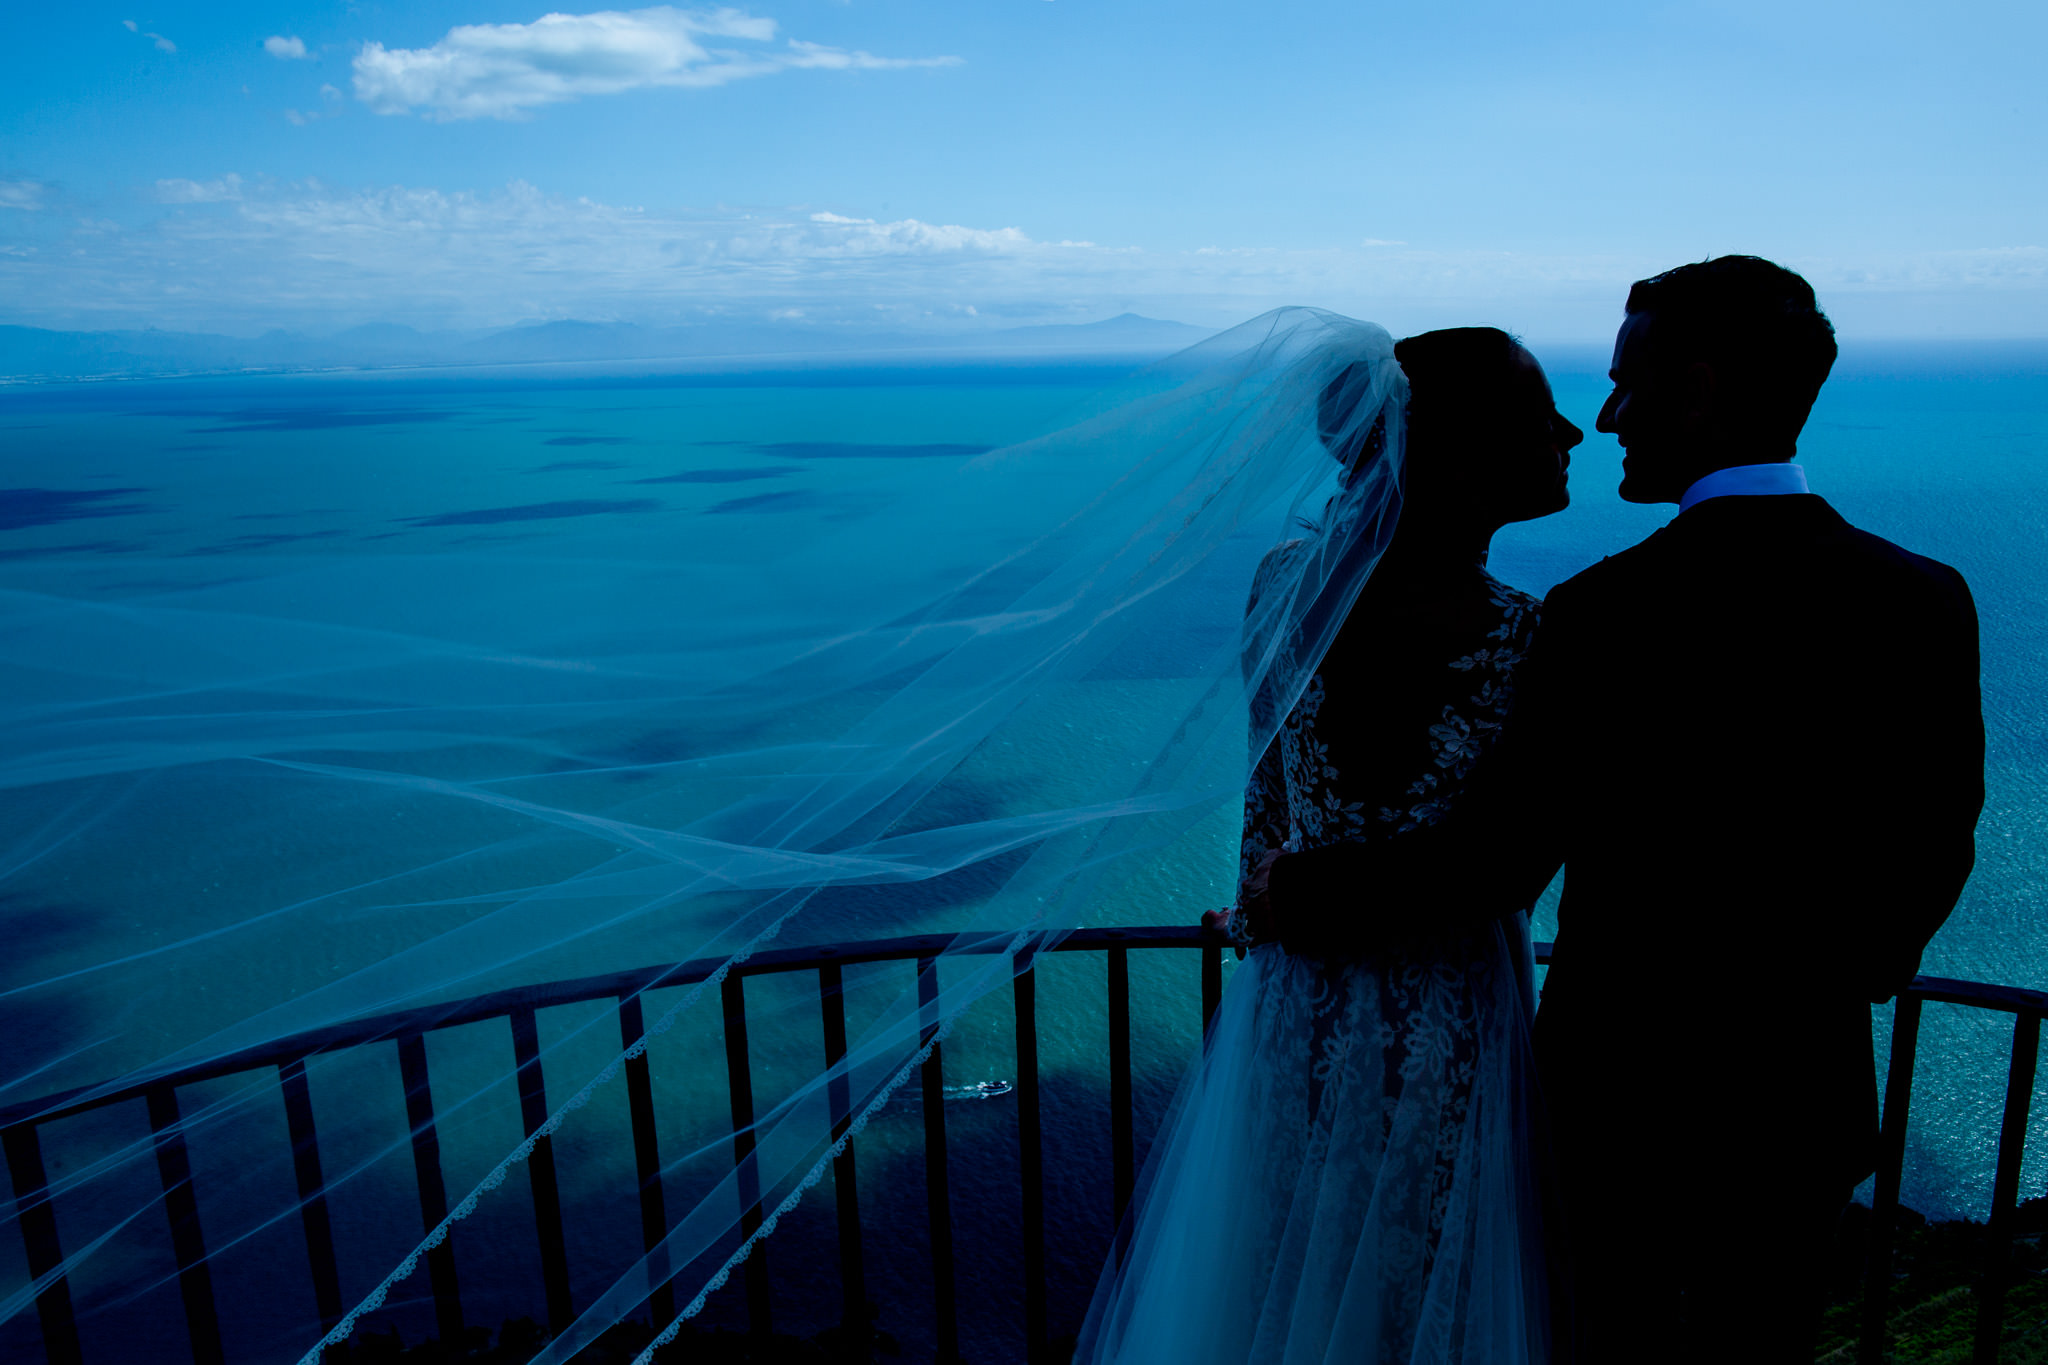 Bride and Groom at Villa Cimbrone in Ravello Italy on Amalfi Coast